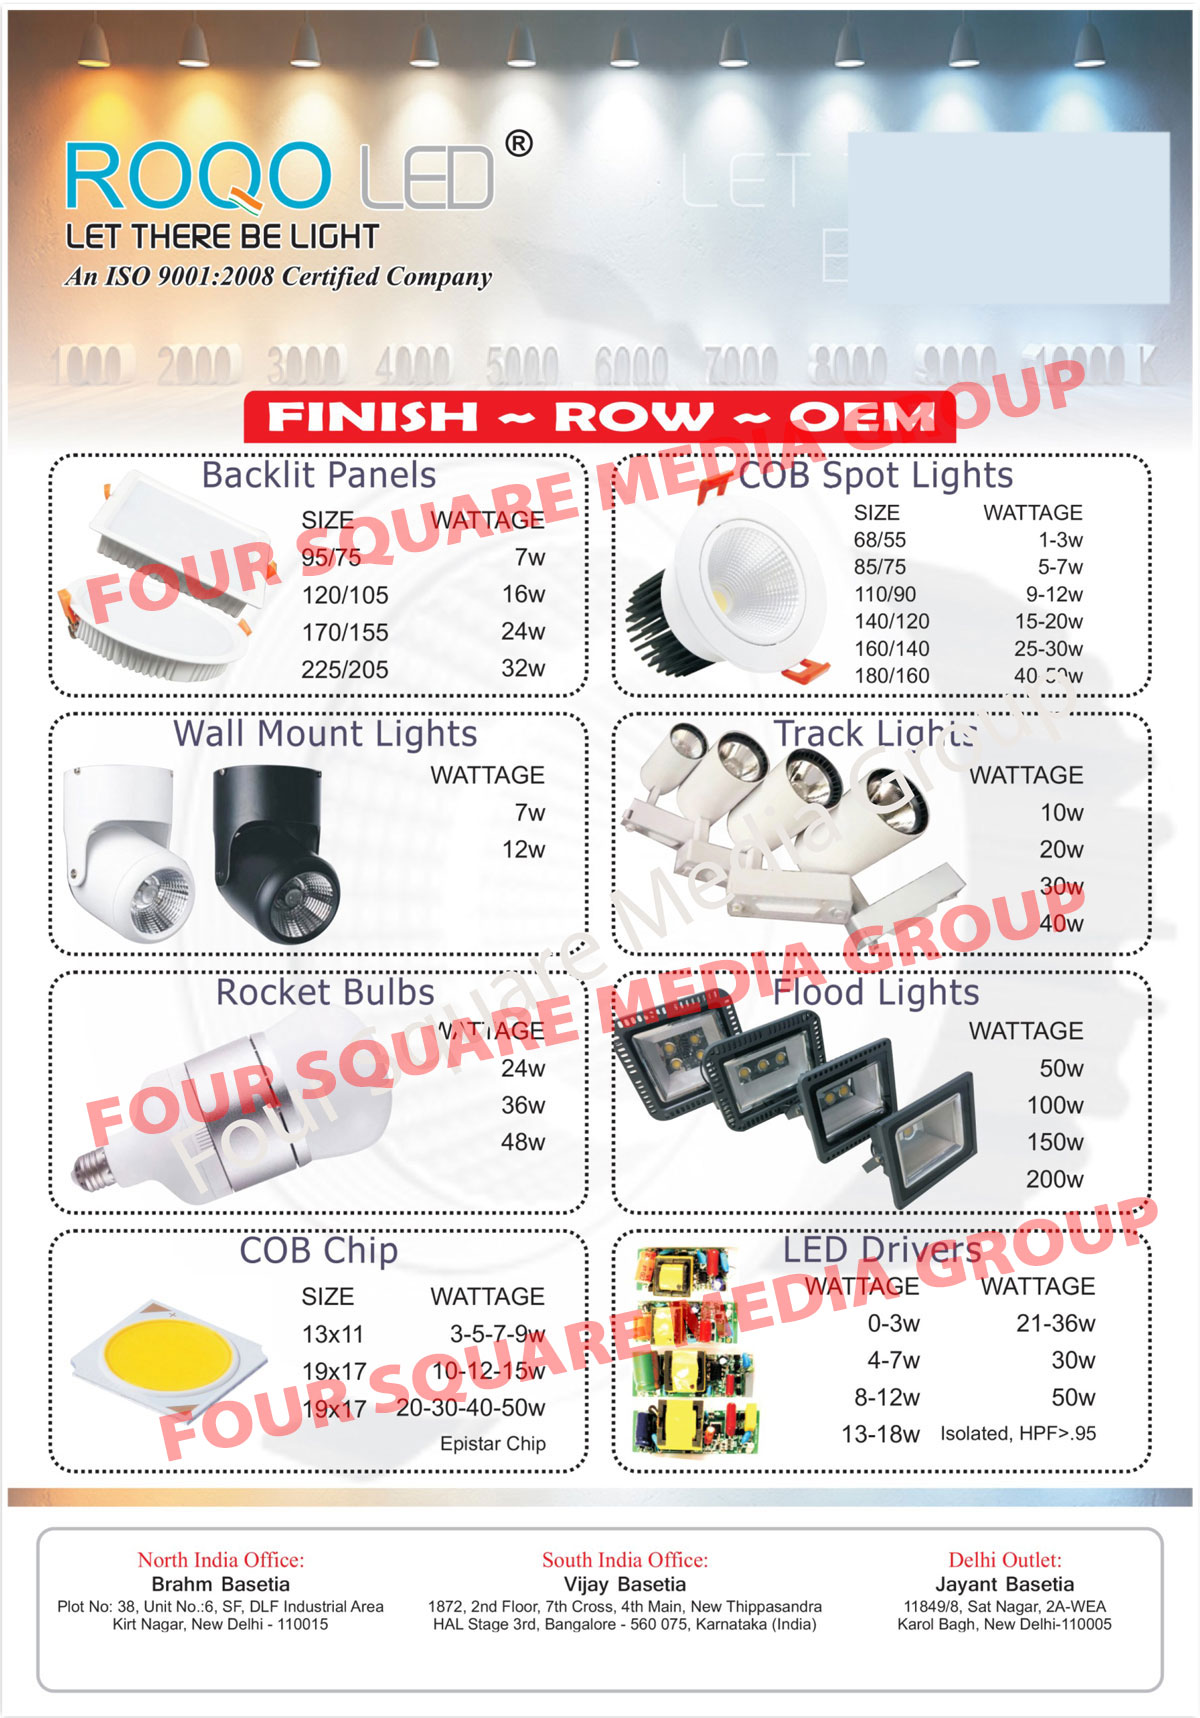 Led Lights, Led Panel Lights, Led Down Lights, Led Bulbs, Led Drivers, Led Isolated HPF Drivers, Led Driver Cabinets with Air Windows, Led Raw Materials, Led Equipments, Led Modules, Backlit Panels, COB Spot Lights, Wall Mount Lights, Track Lights, Rocket Bulbs, Flood Lights, COB Chips